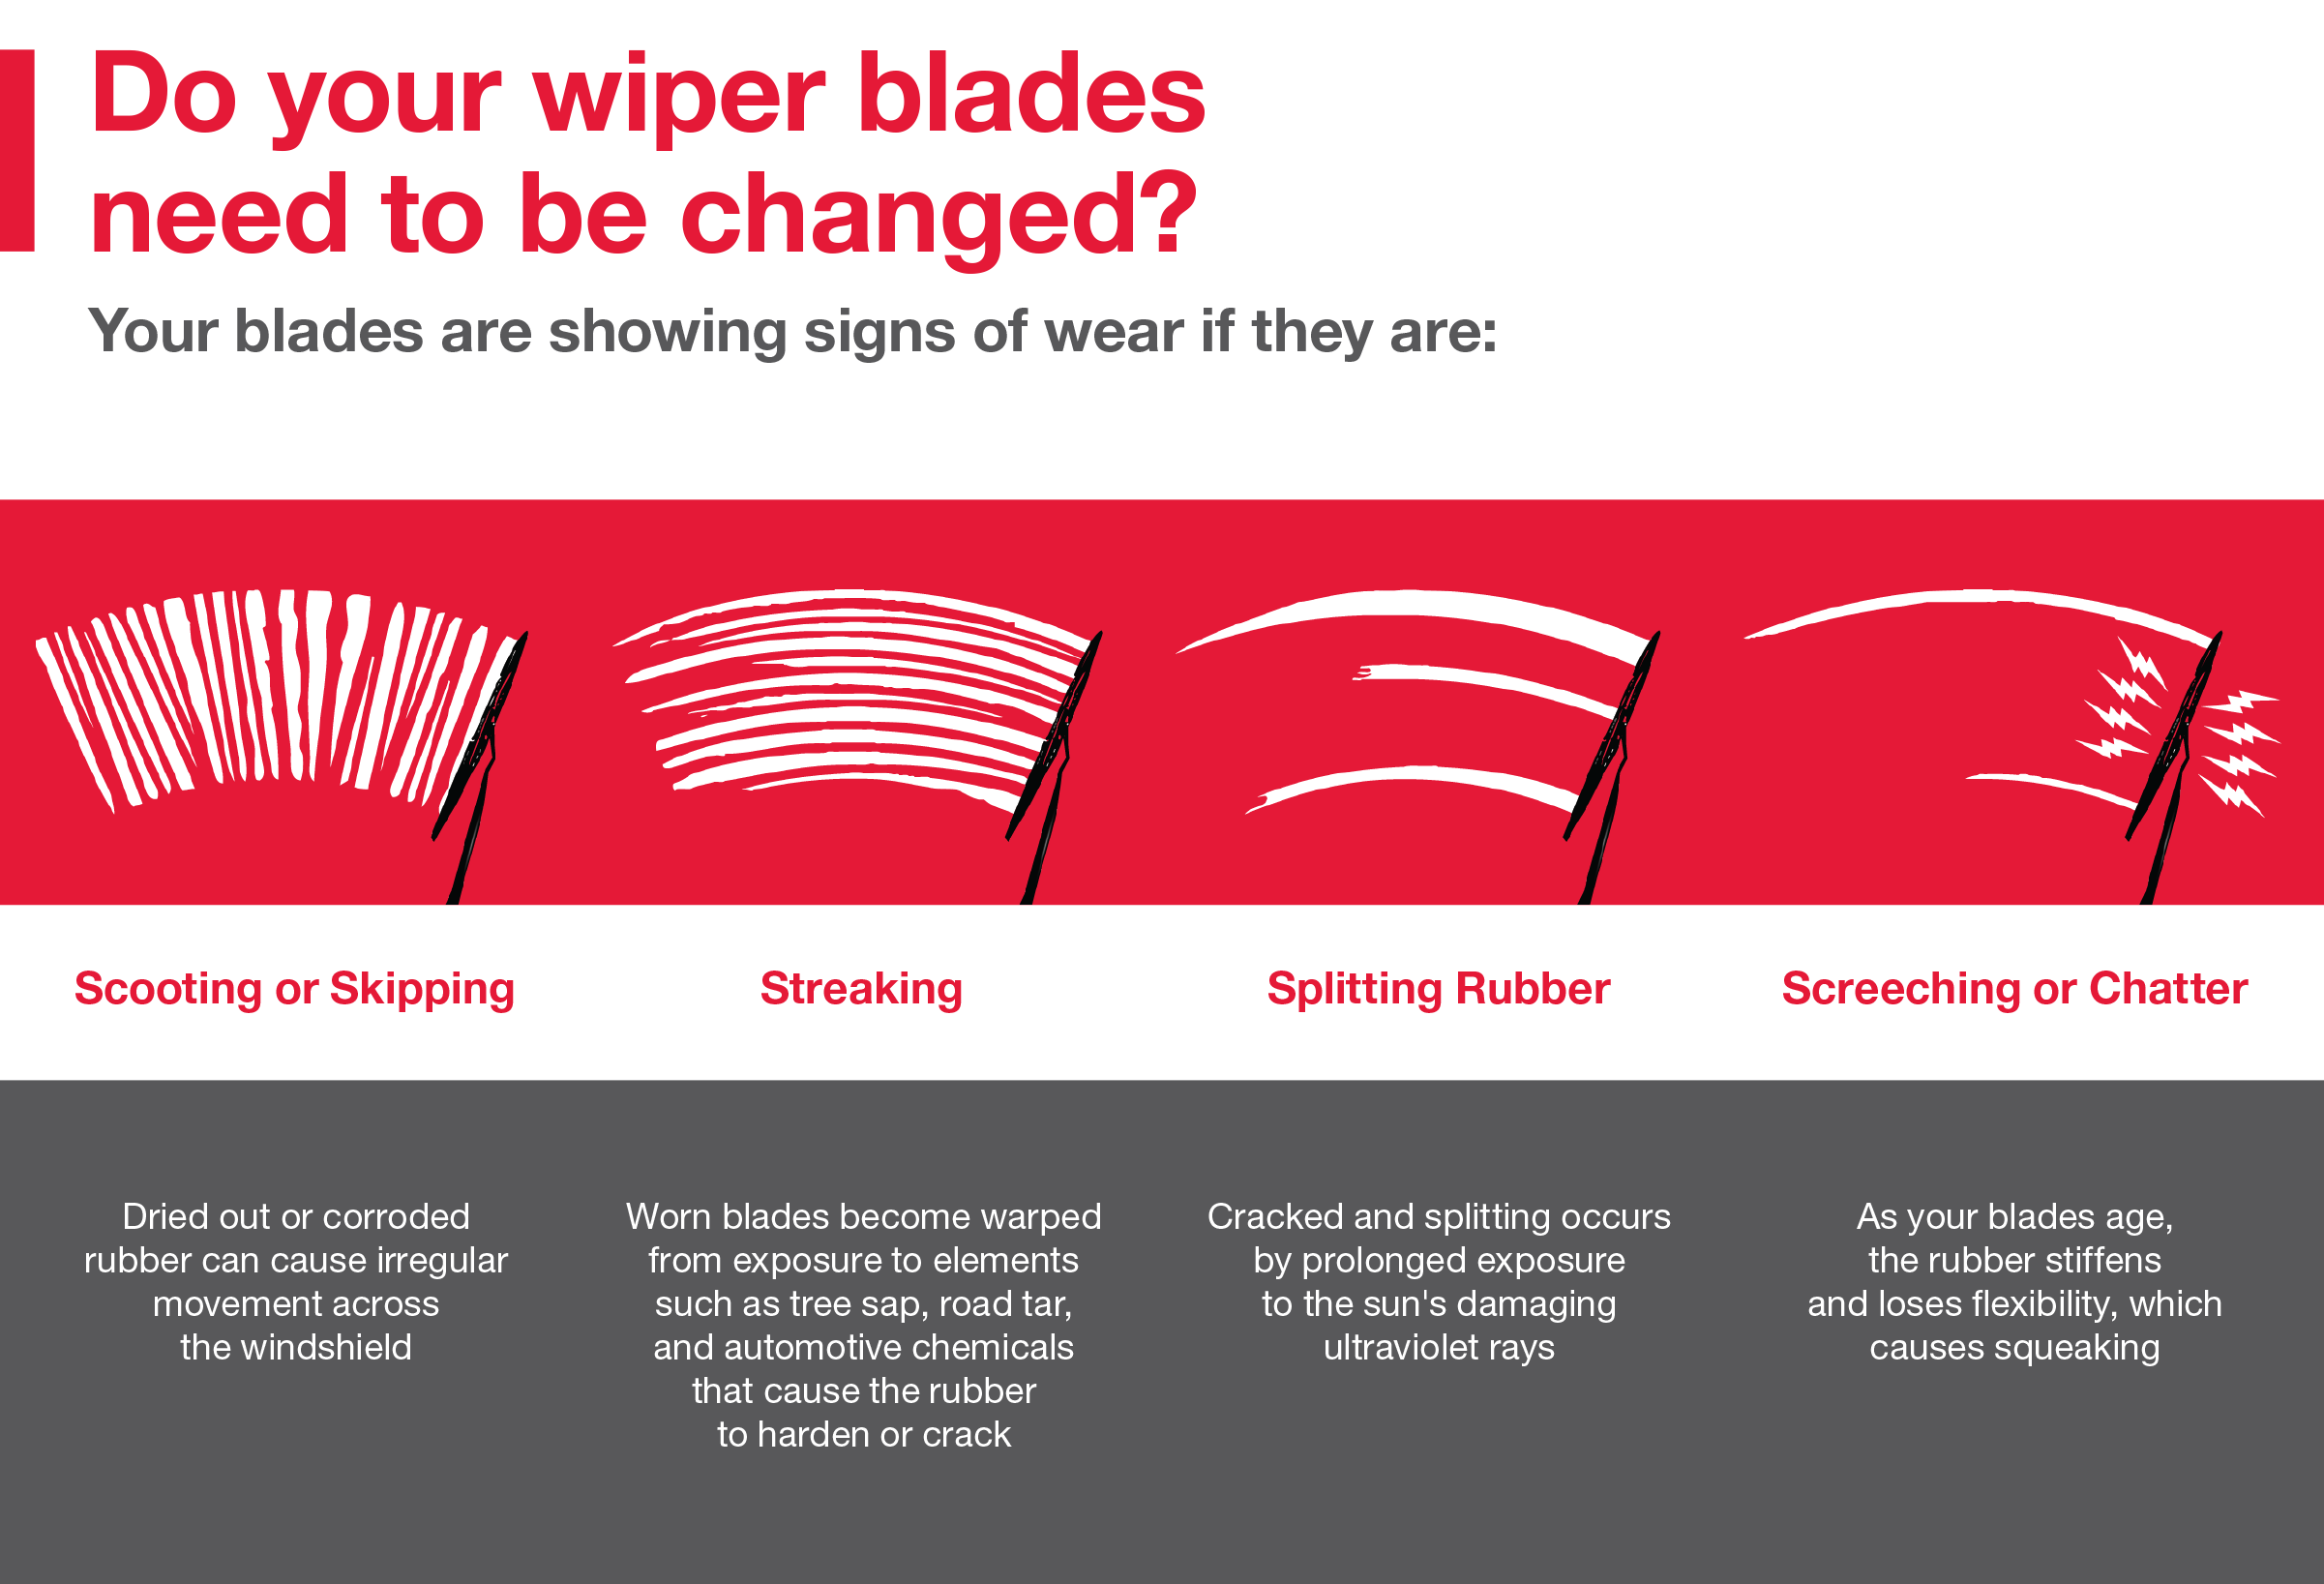 Do your wiper blades need to be changed? Call your local dealer for more info: (540) 381-8612